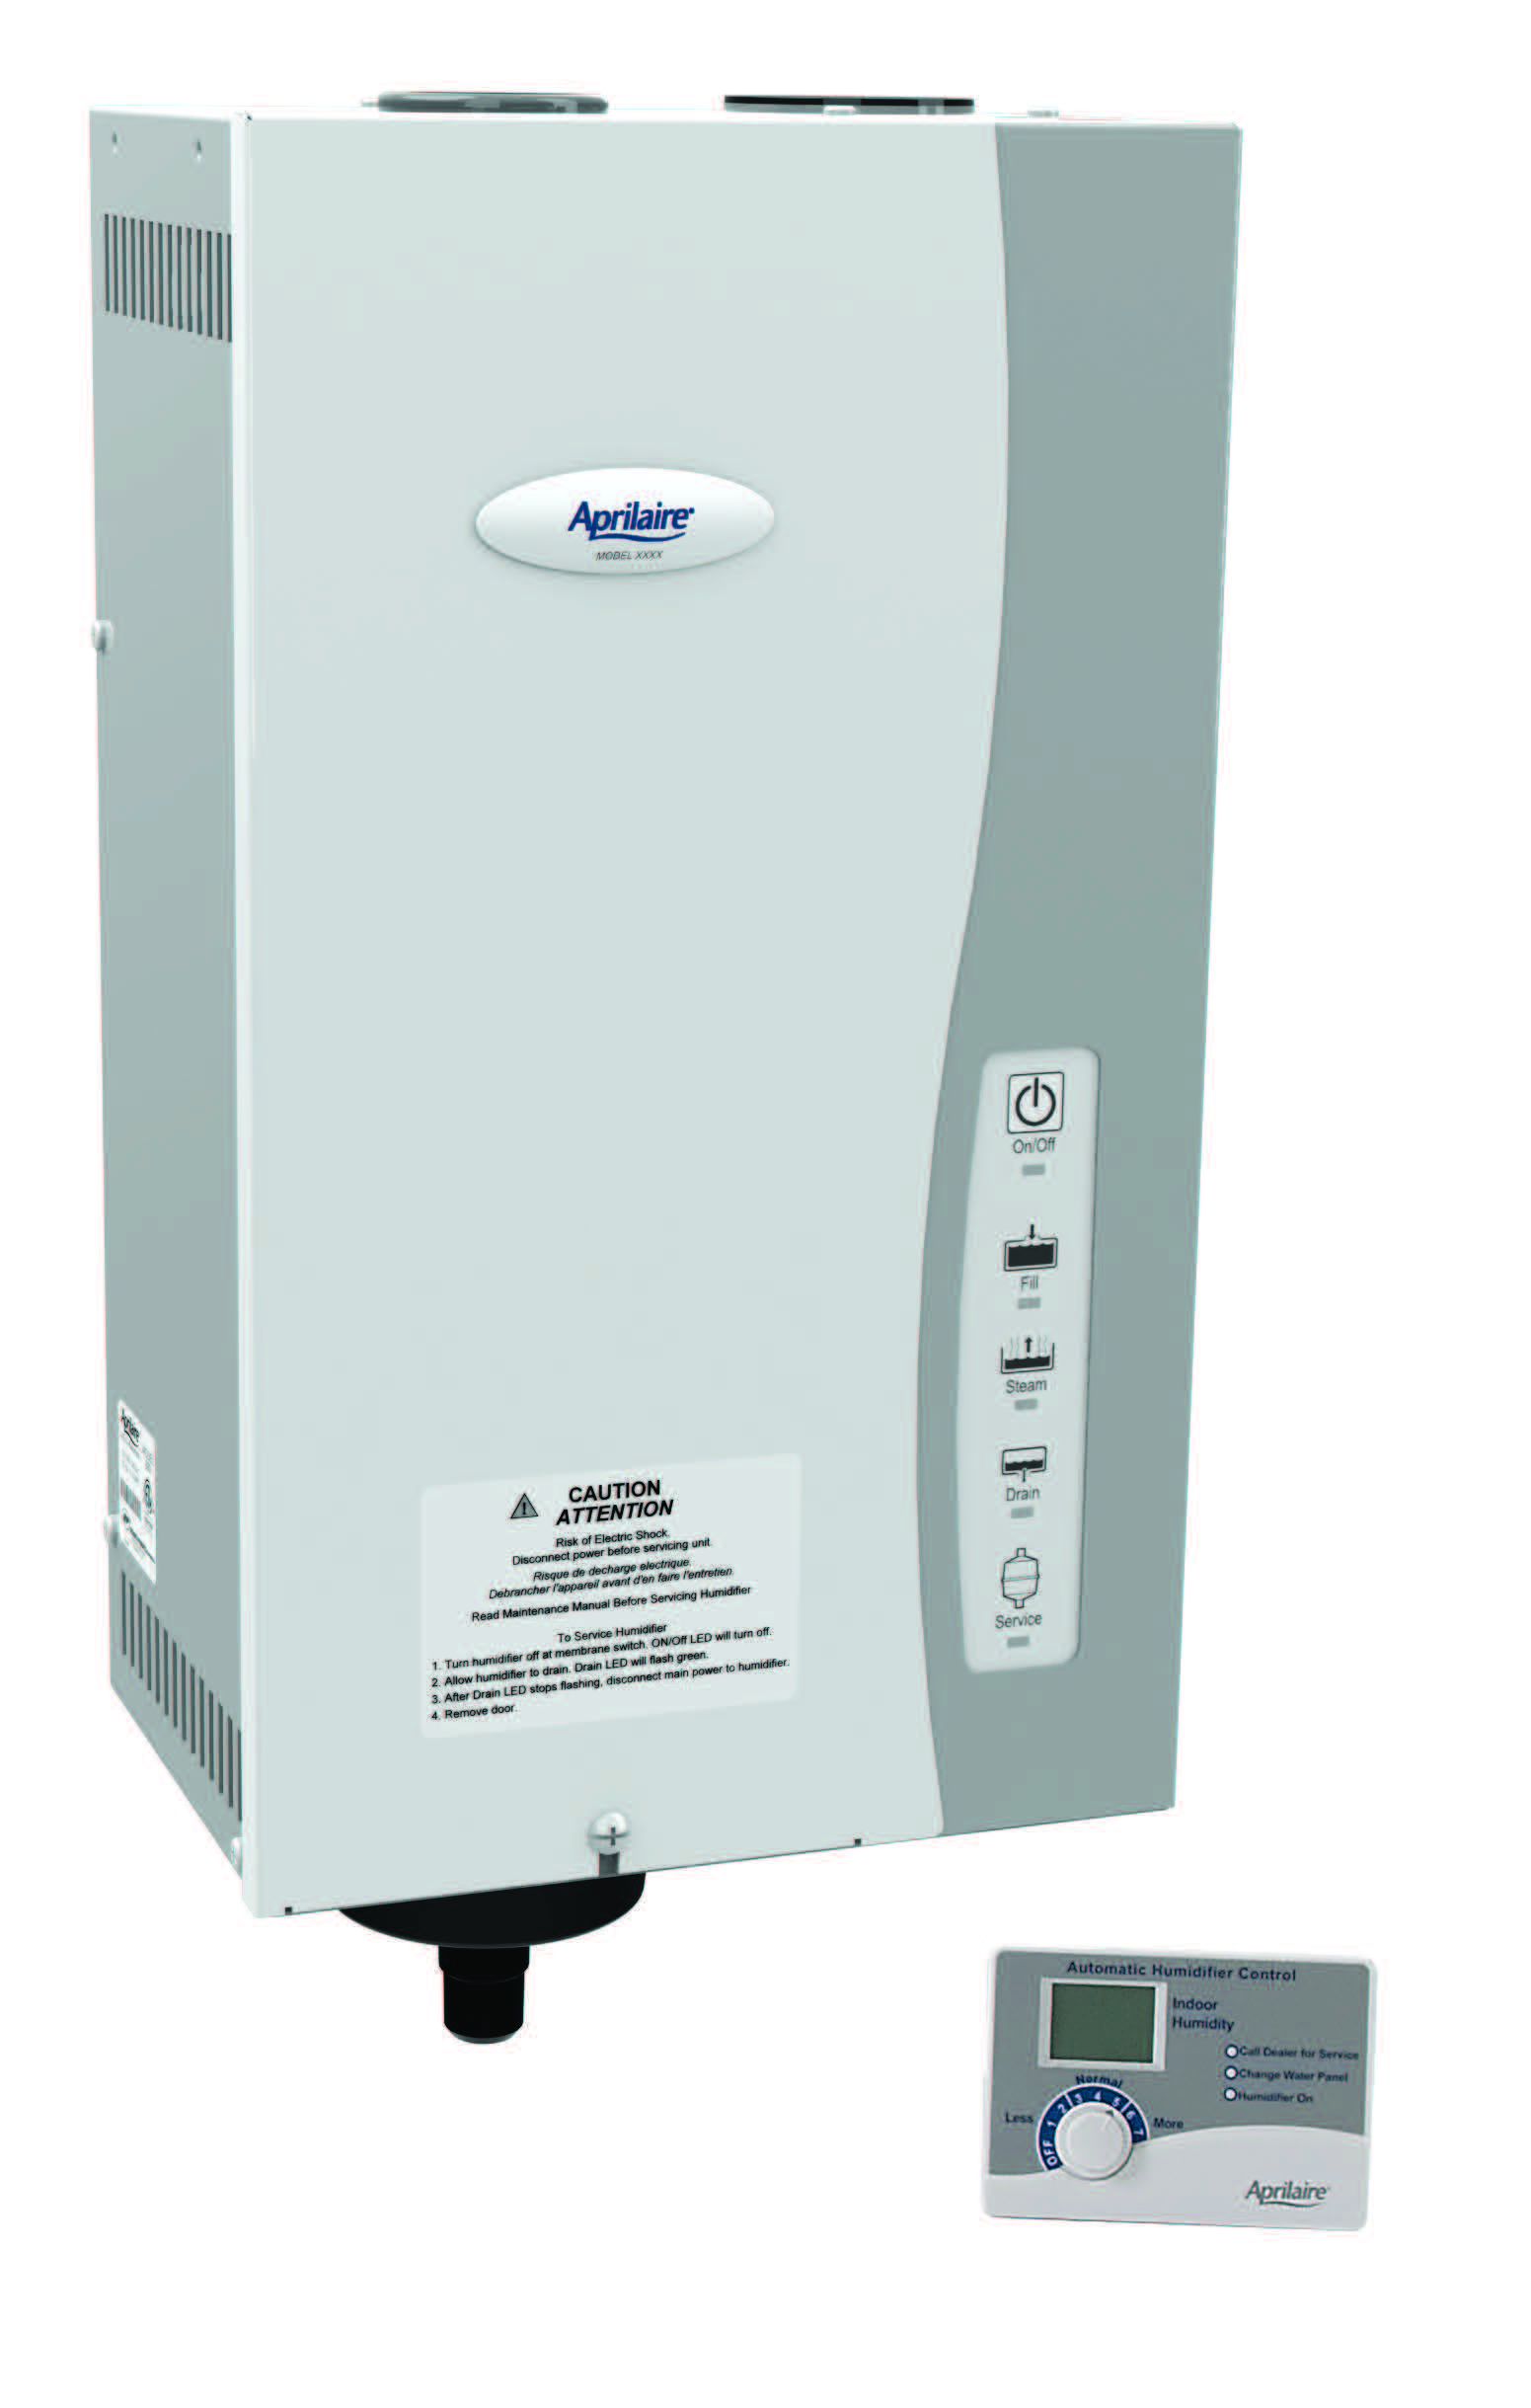 Aprilaire Steam Humidifier designed for home applications where evaporative humidifiers are less practical.